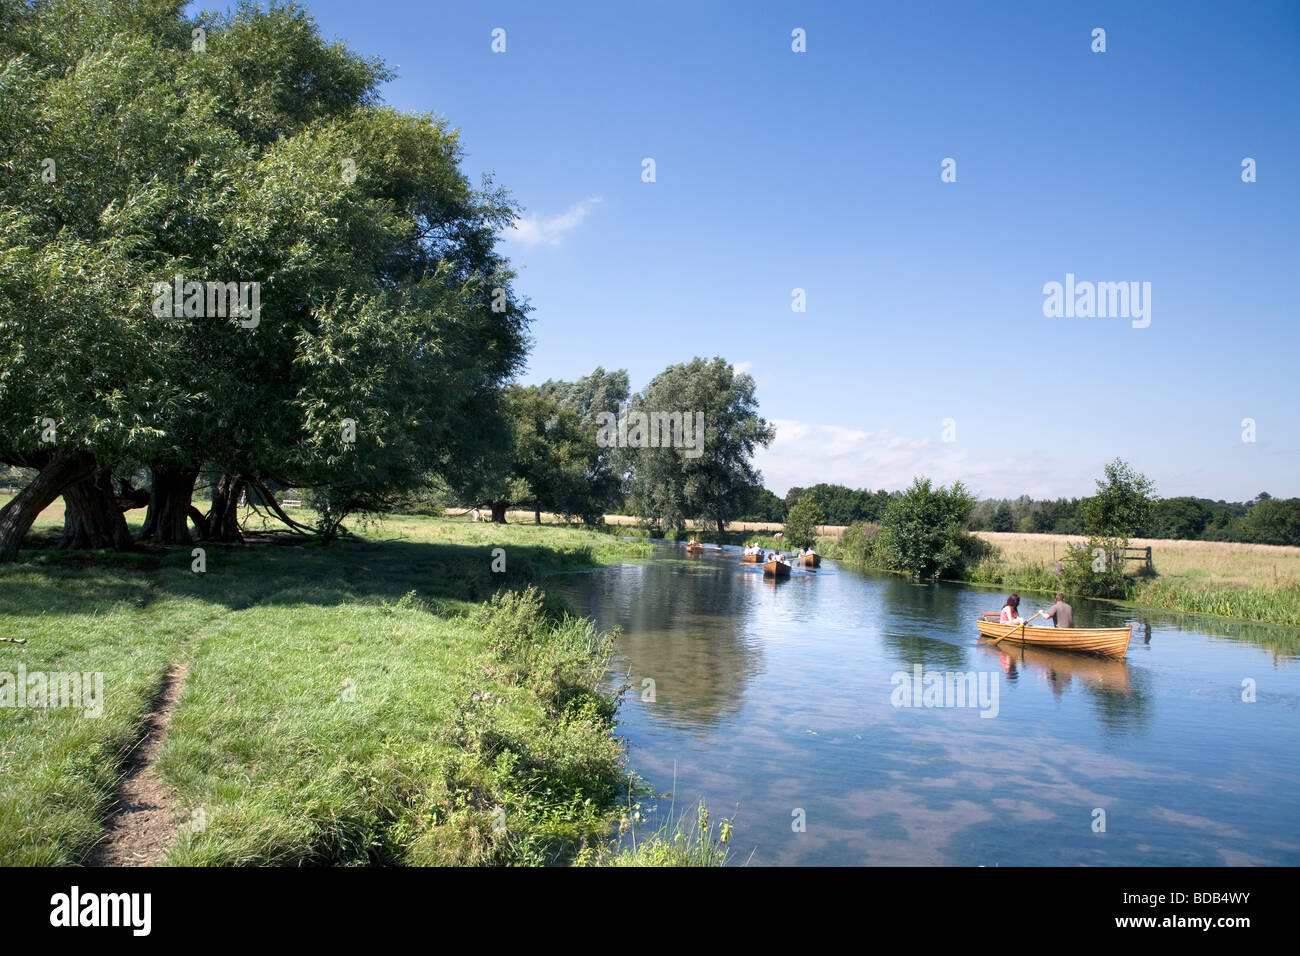 people Boating on the river Stour between The historic village of Dedham and Flatford in Constable country Stock Photo